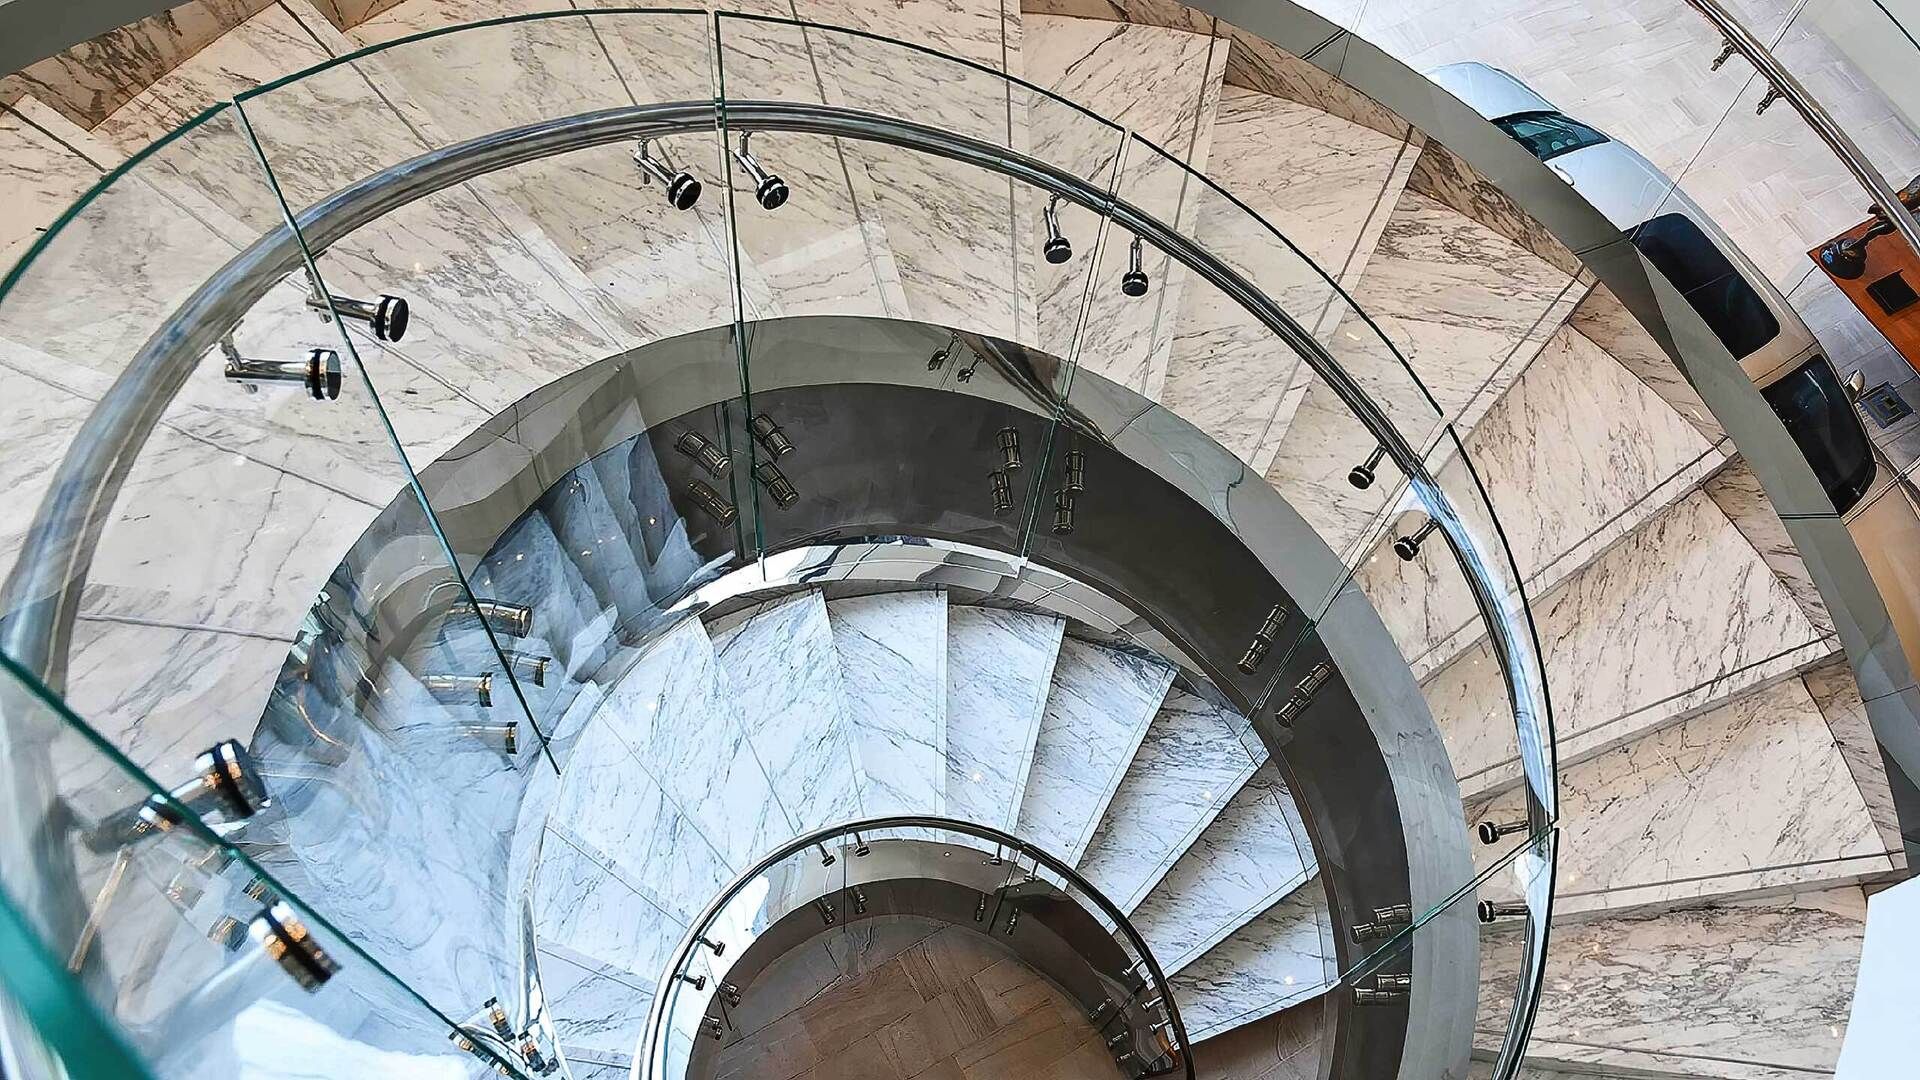 A curved staircase could be the architectural focal point in a showroom. Using bent glass balustrades (railings) allows you to create a modern architectural masterpiece that will enhance the feeling of space and light in your design.